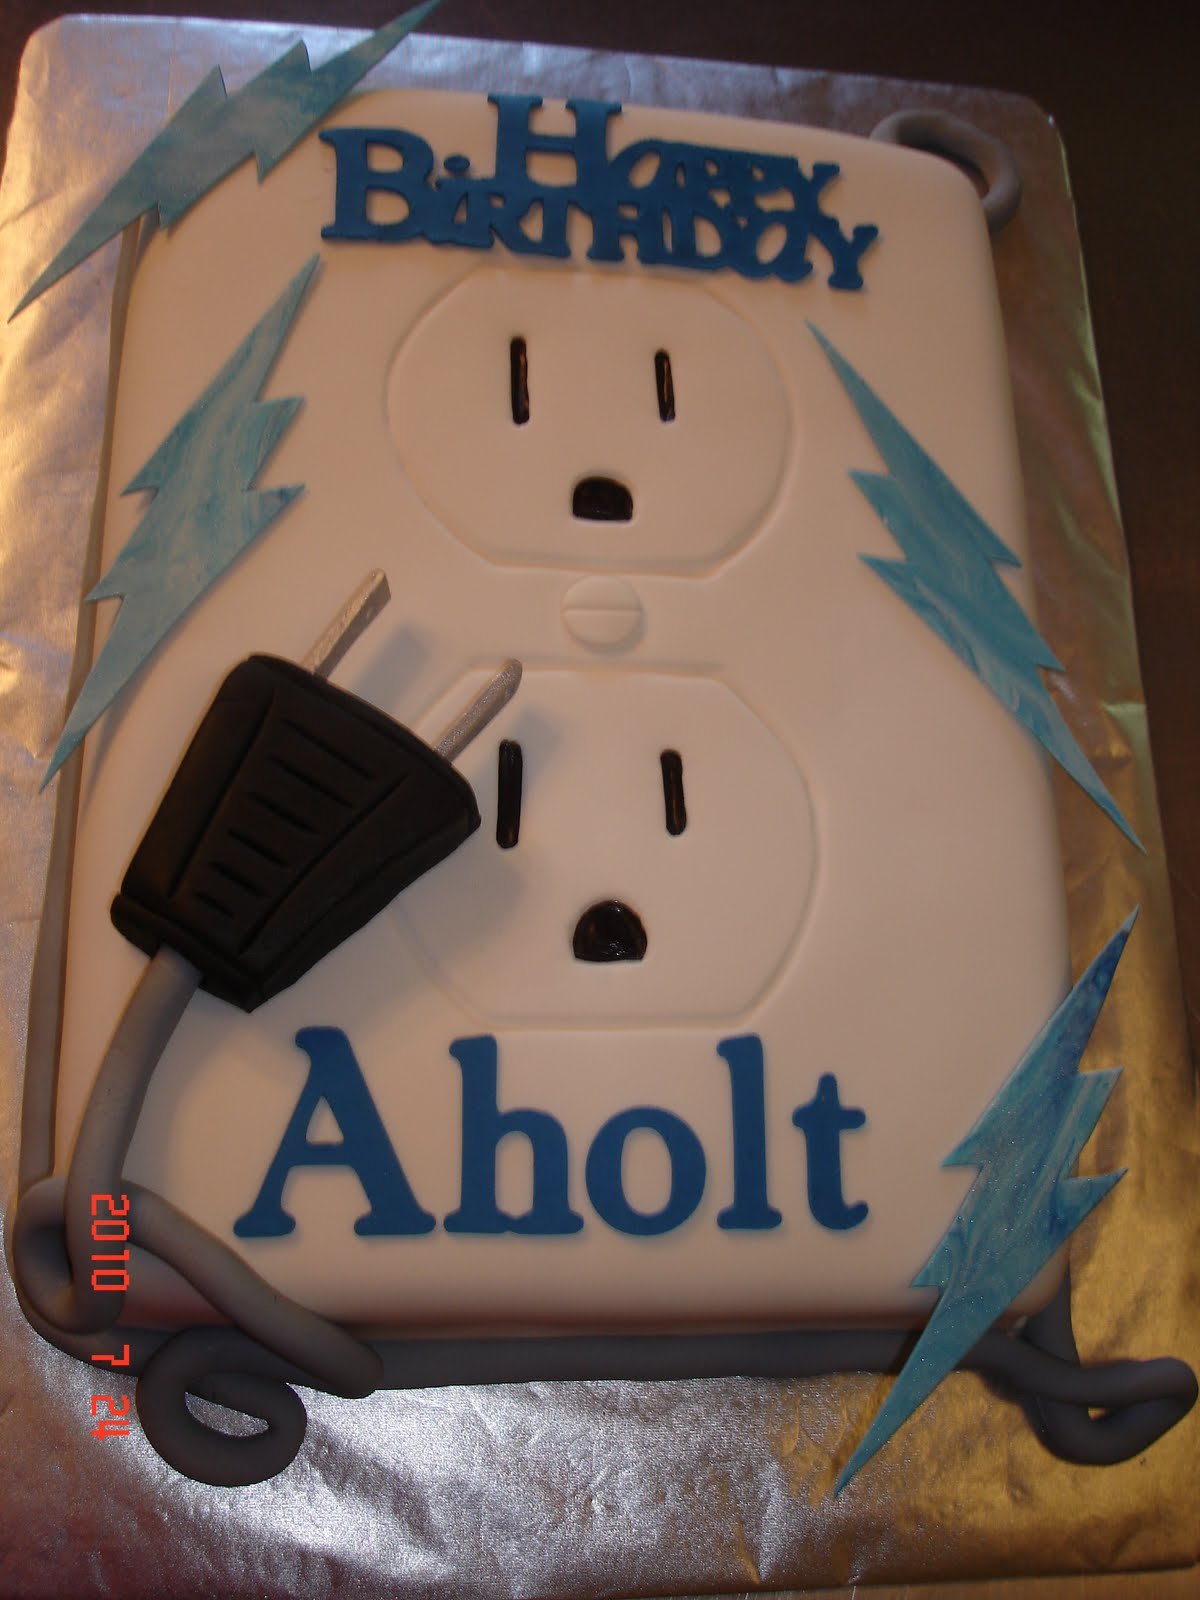 Birthday Cake Ideas For Electrician Image Inspiration of Cake and